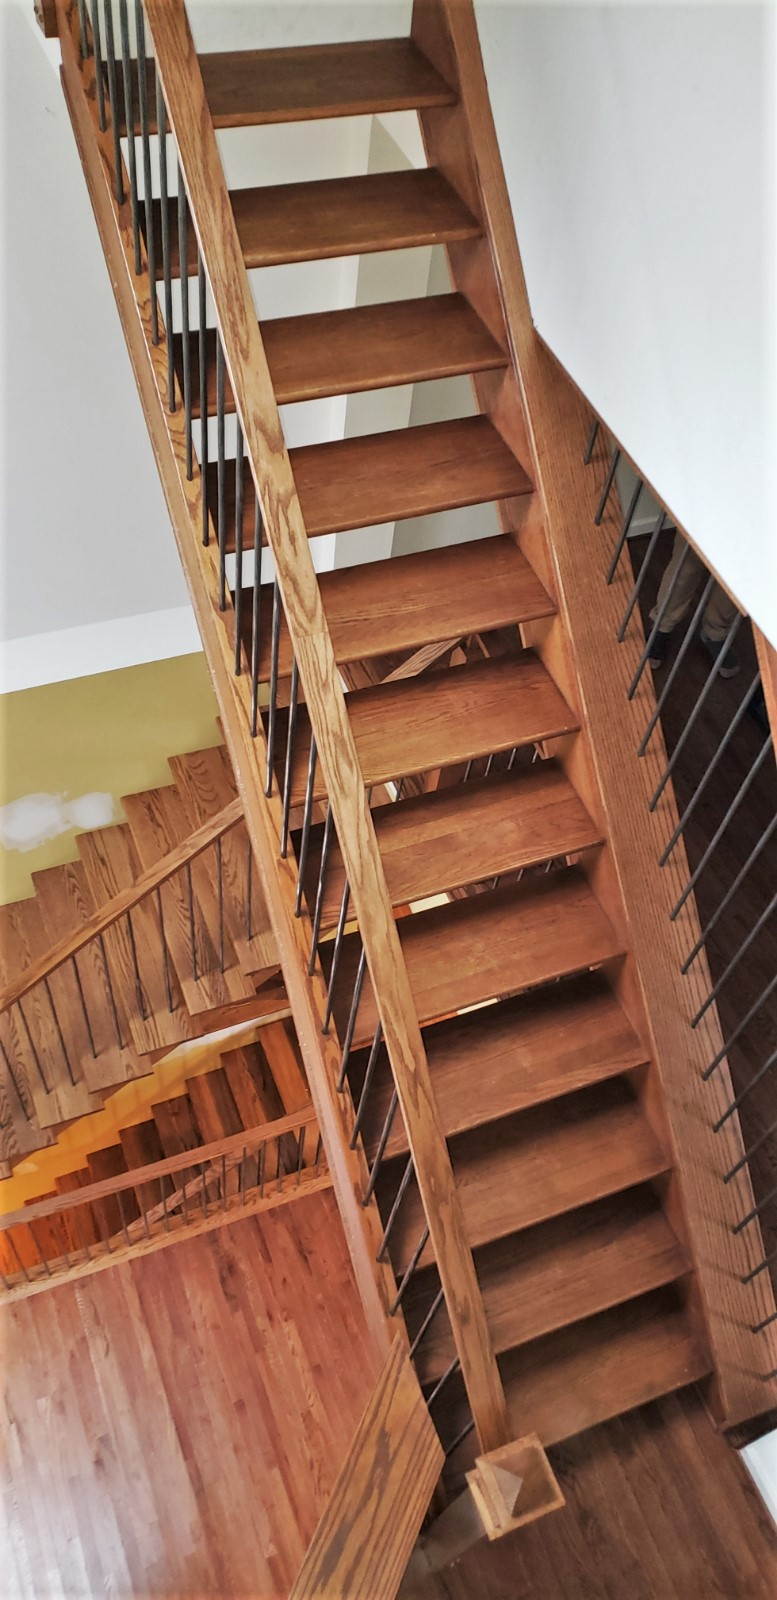 Floating Oak Stairways with Stainless Steel Balusters